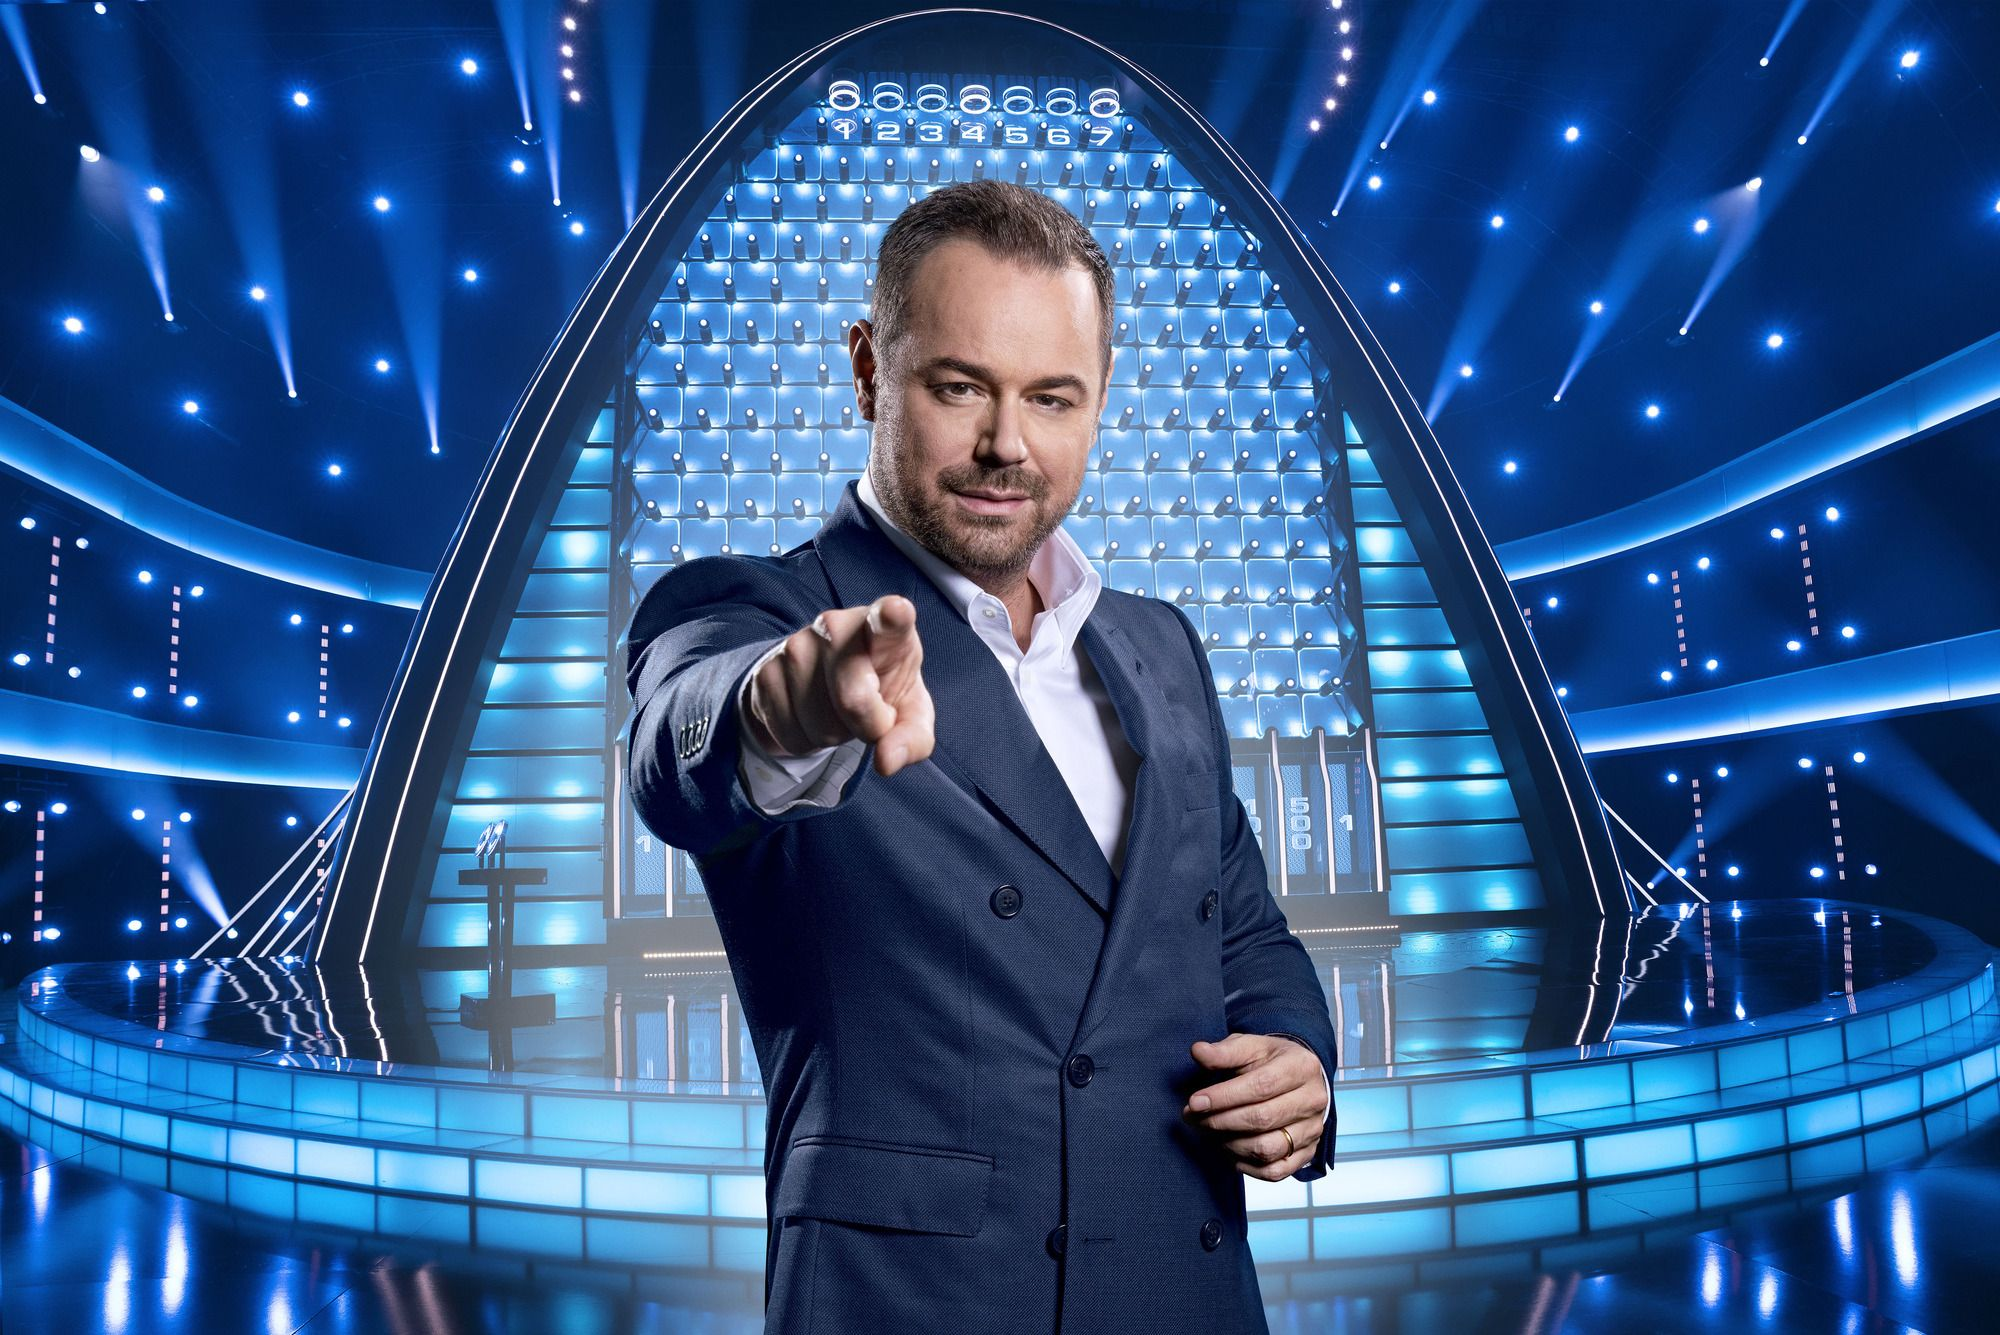 BBC confirms the future of EastEnders star Danny Dyer's game show The Wall